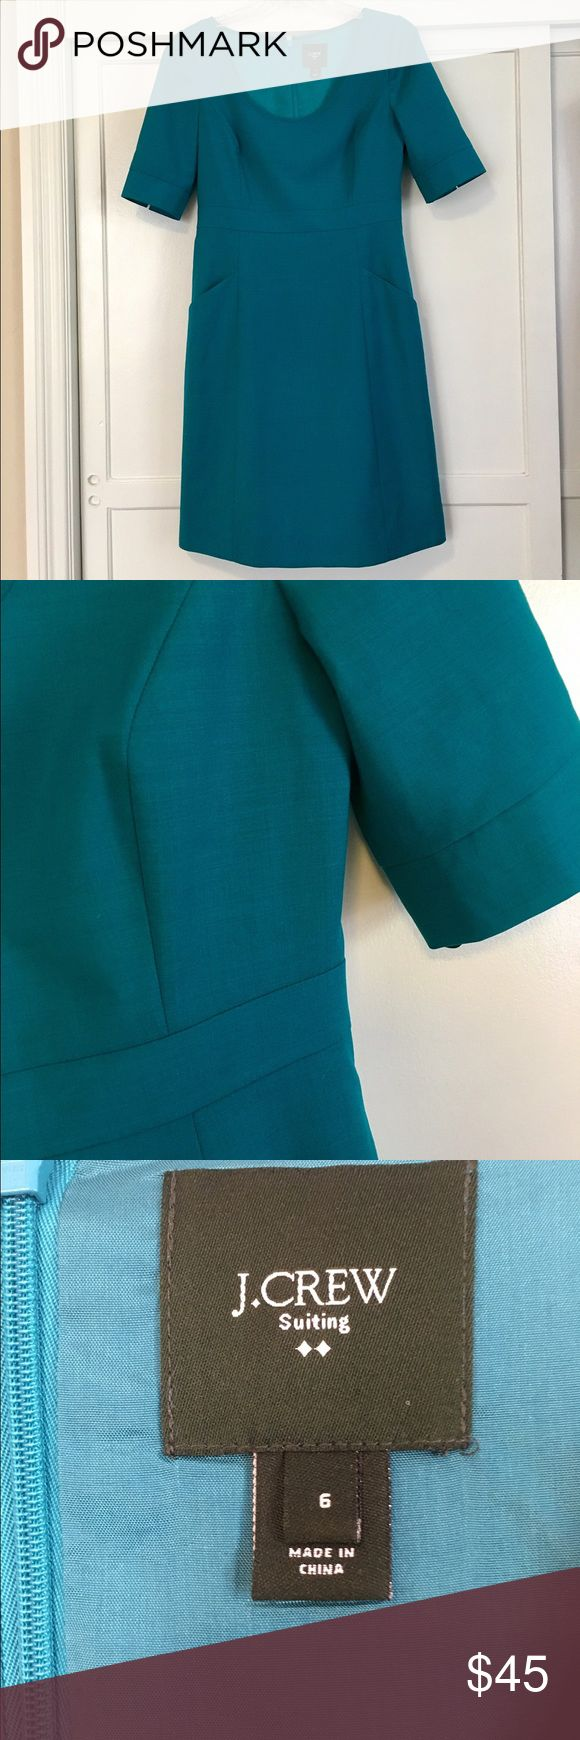 Gorgeous J Crew Suiting business dress. J Crew suit dress in deep teal. Back zip, fully lined. Knee length, slash pockets. Very smart and comfy. Wrinkle resistant suiting wool, seam details around bodice. Perfect condish. J. Crew Dresses Midi